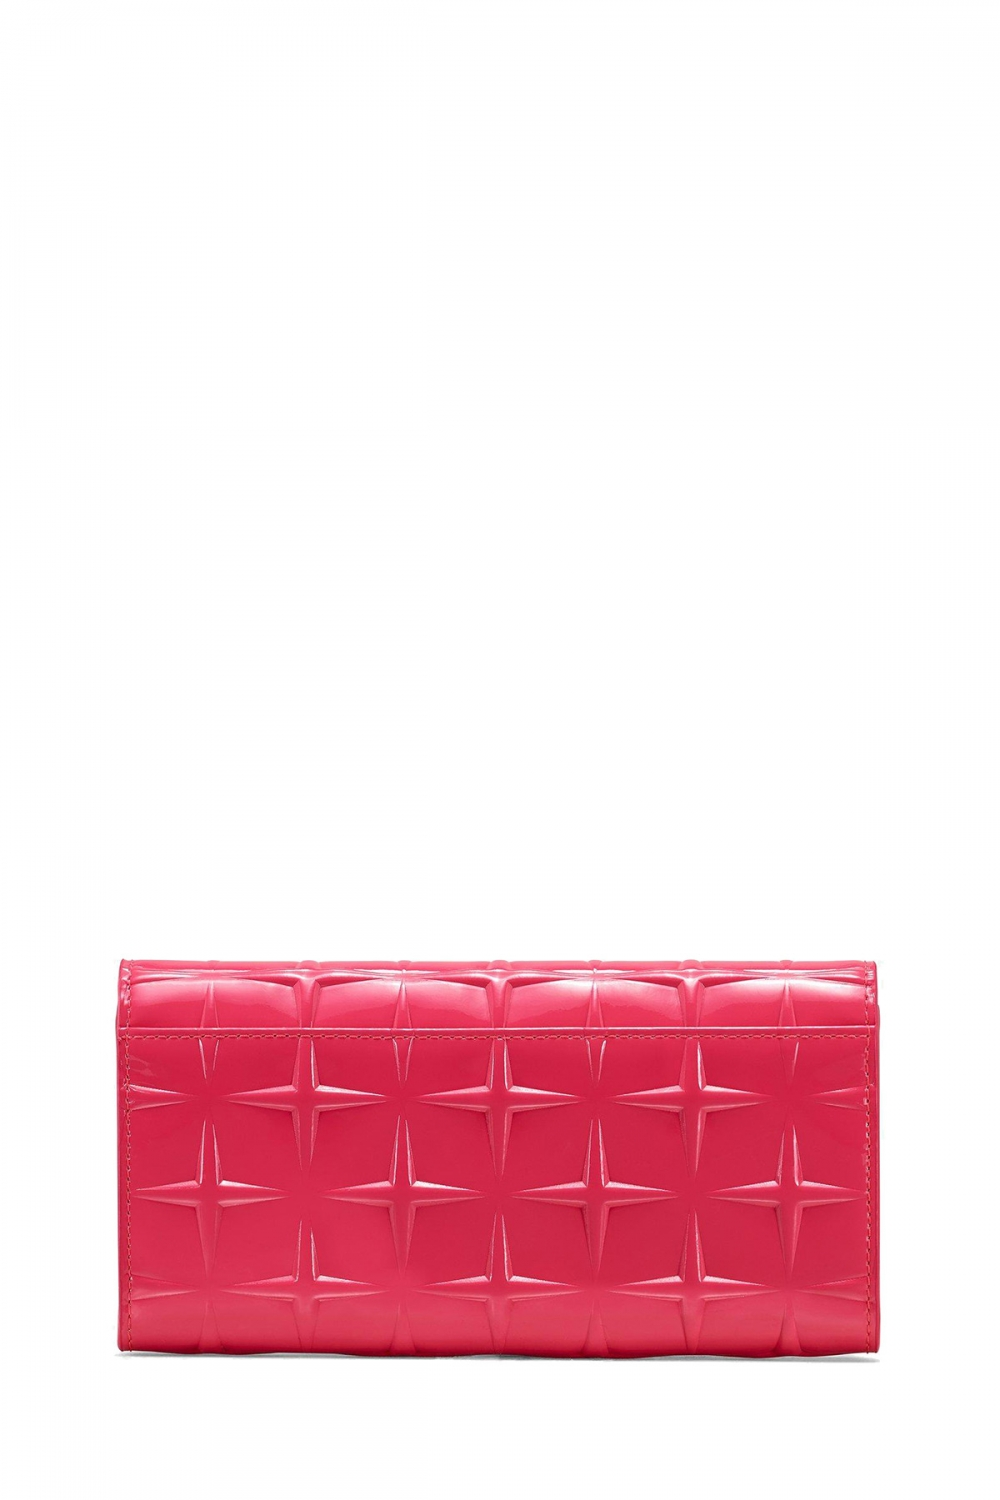 MCM Damen Geldbörse Patricia Diamond Tea Berry 2